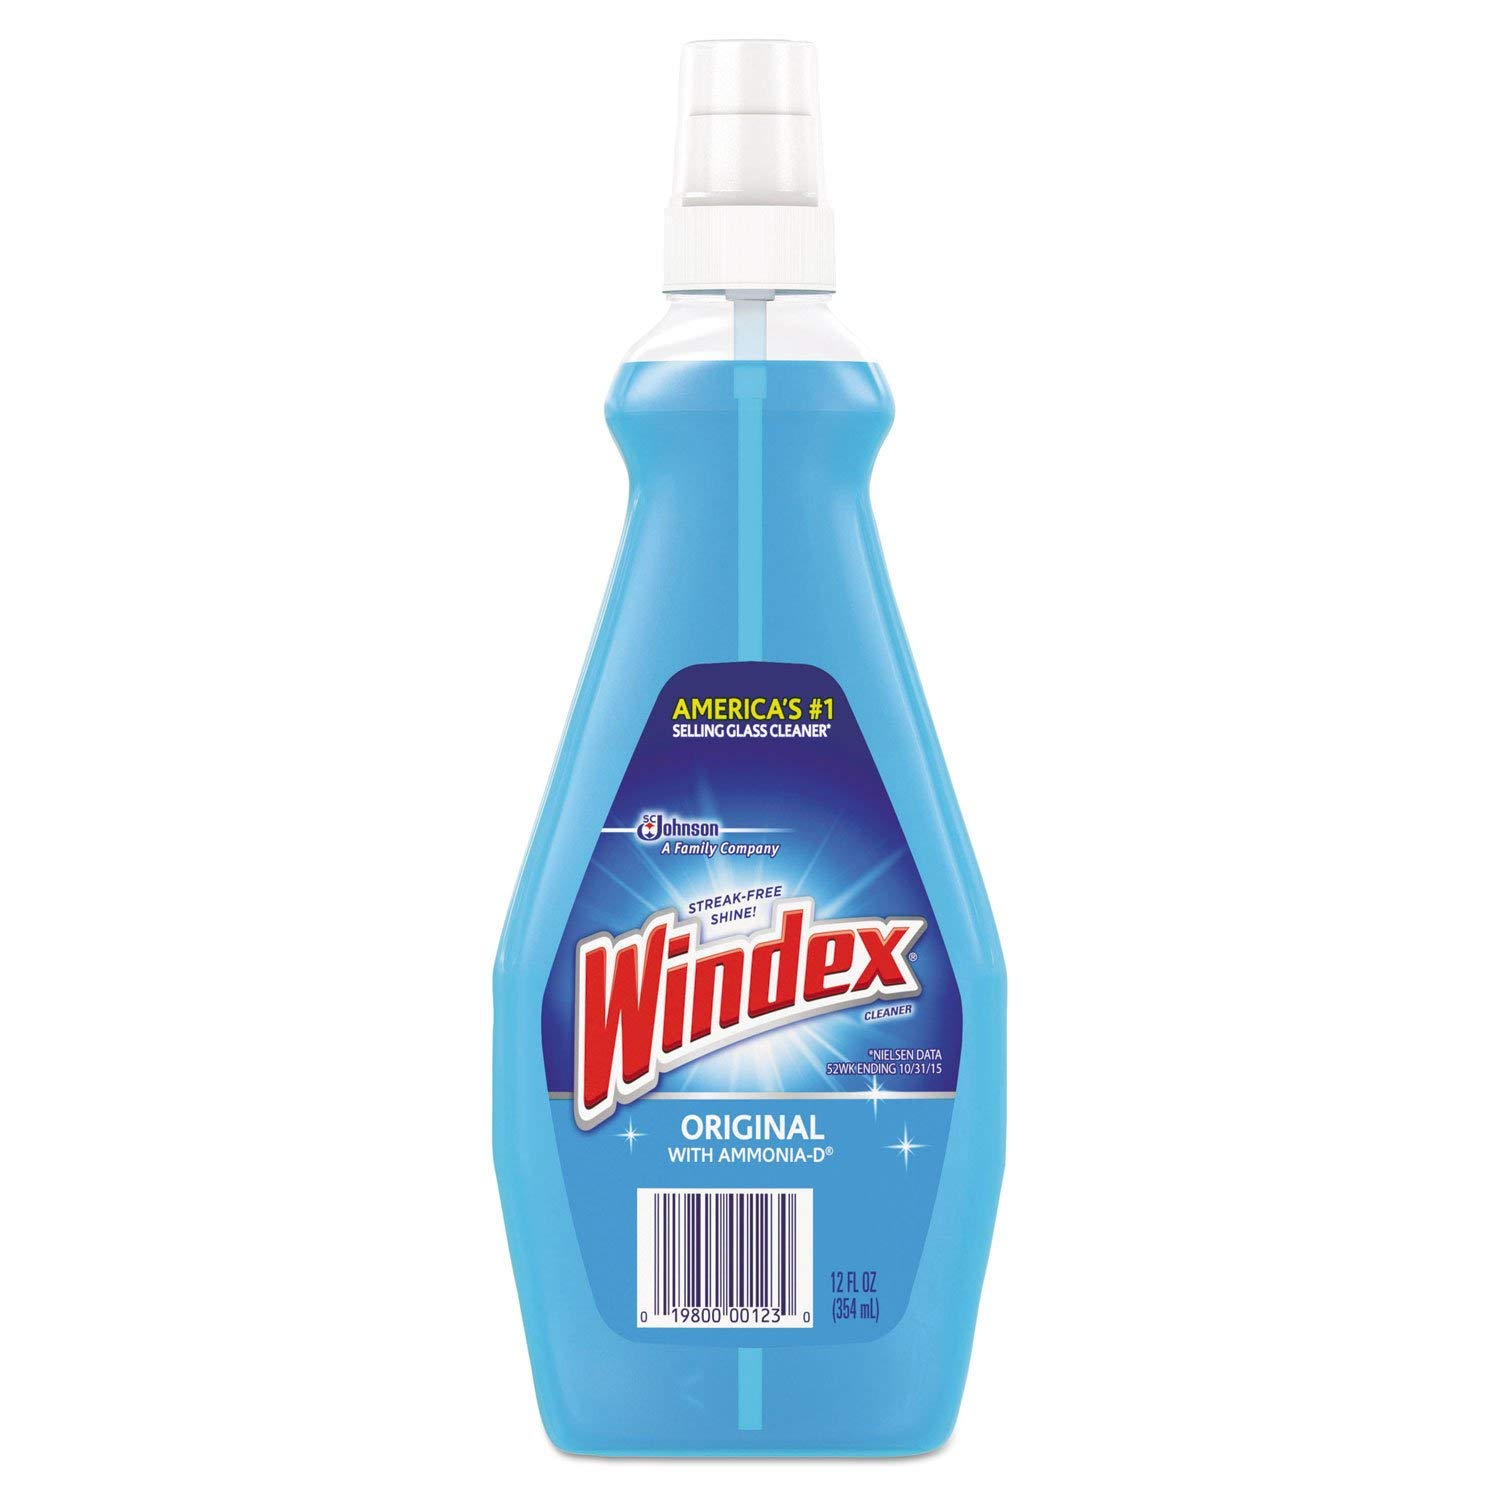 Windex Glass Cleaner, 12 oz, Blue, PK12 by Windex